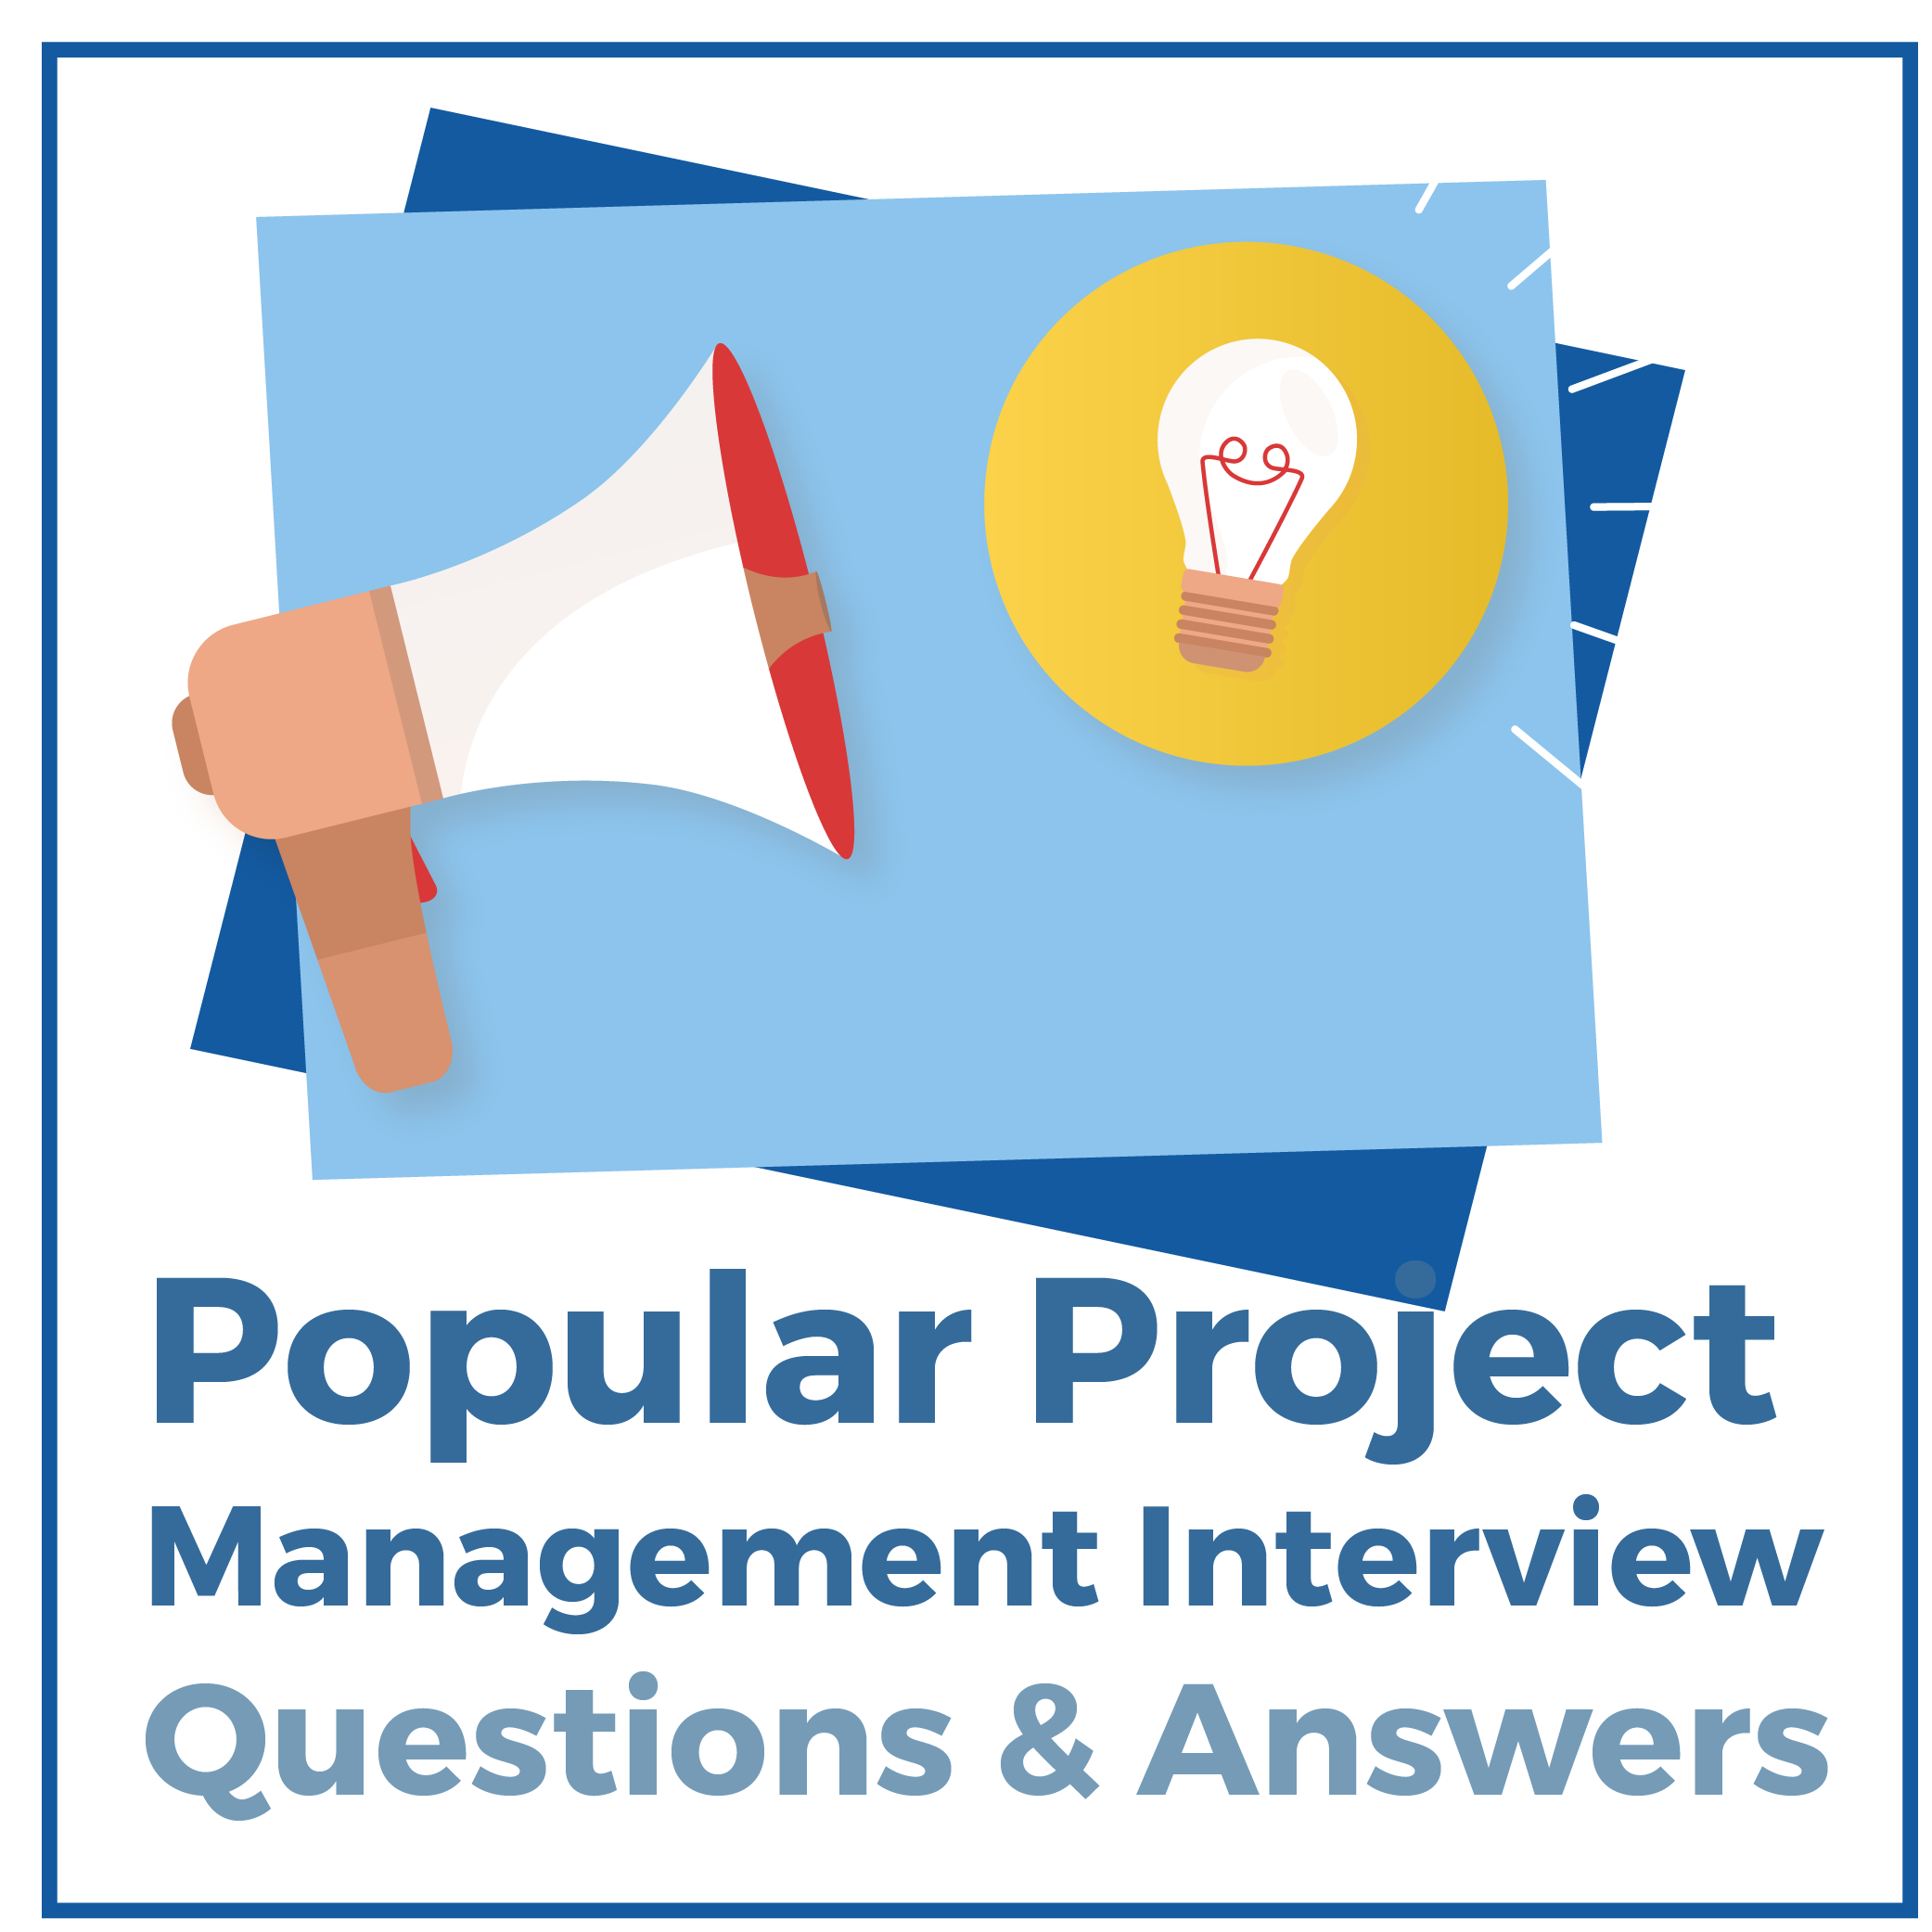 Popular Project Management Interview Questions & Answers